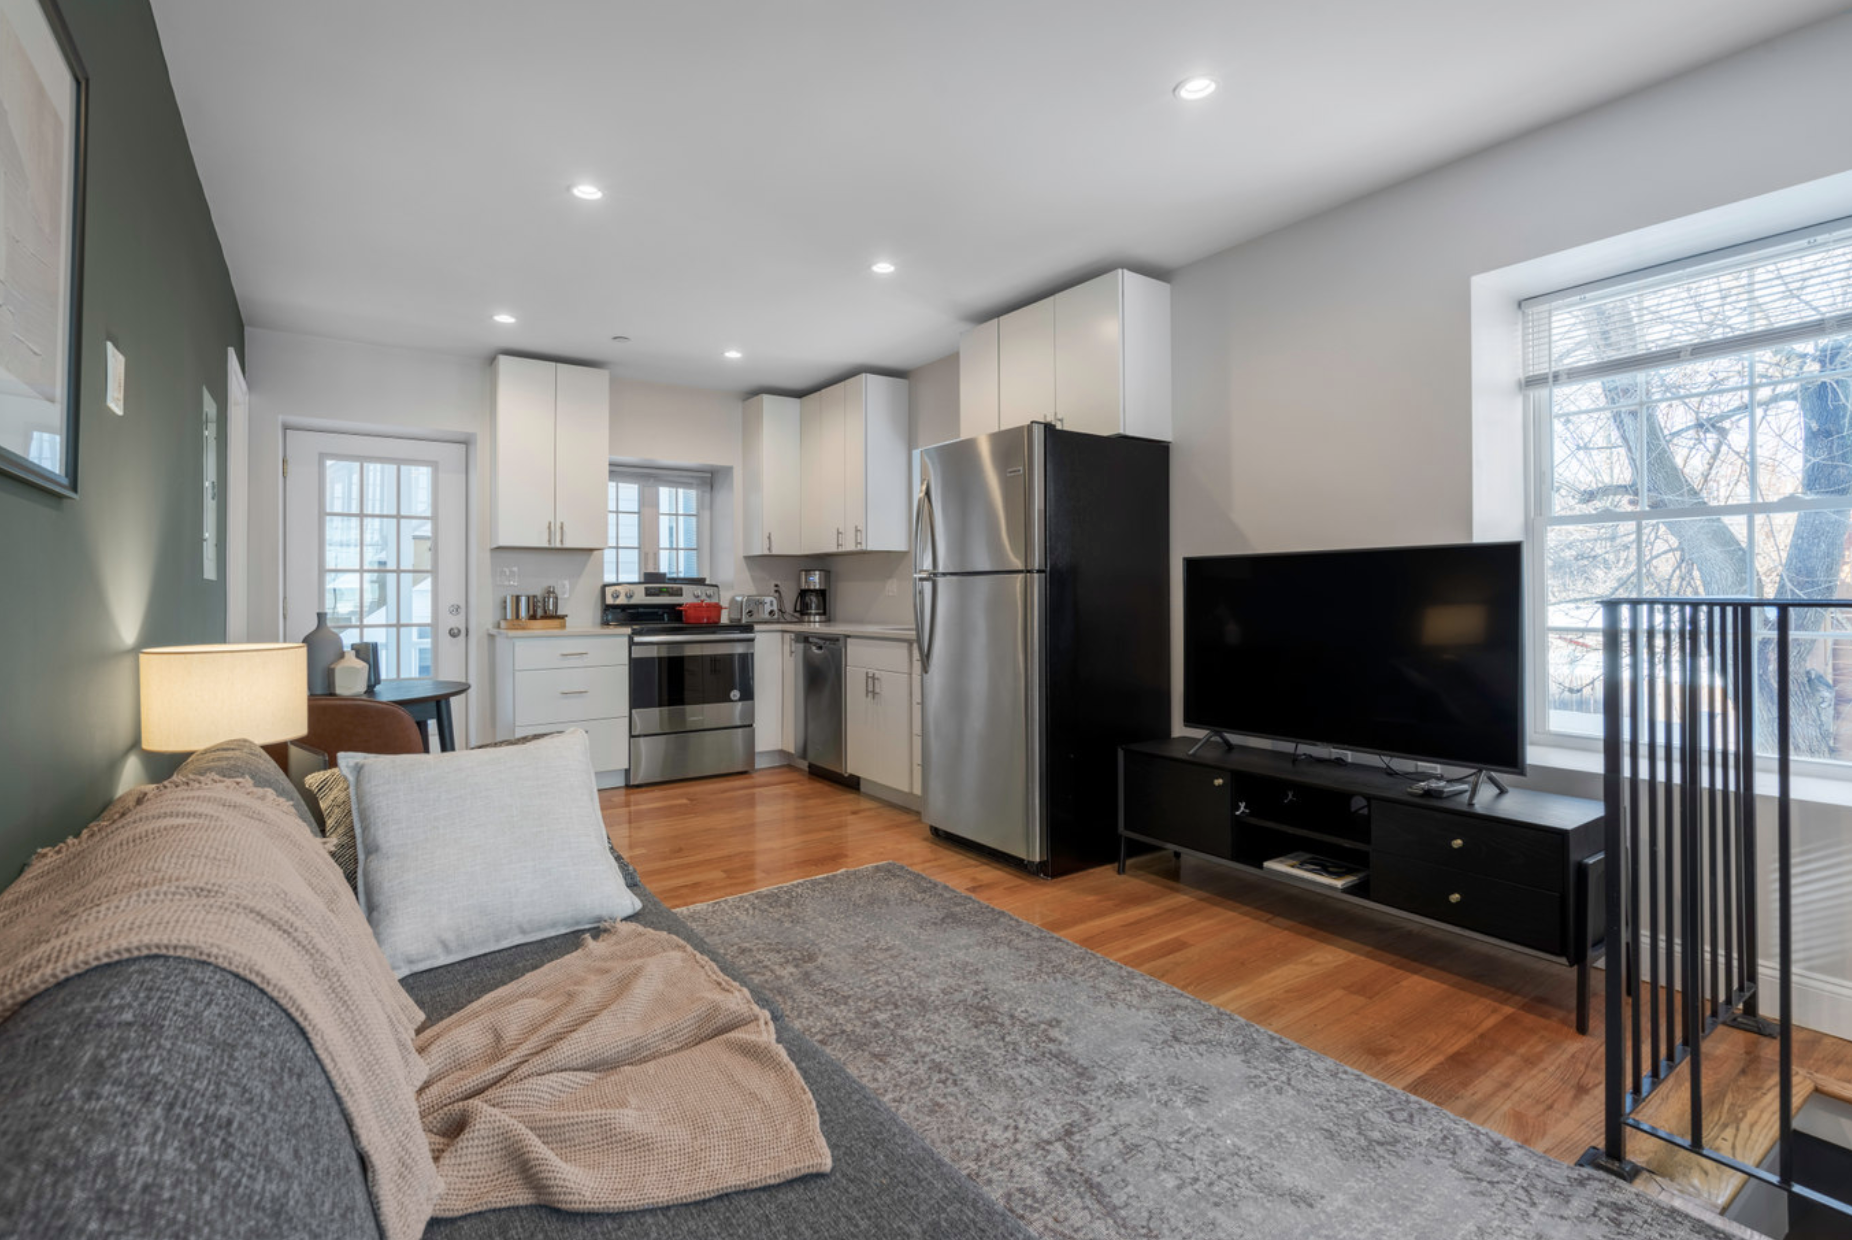 Open Plan Living/Kitchen area at Sumner Street